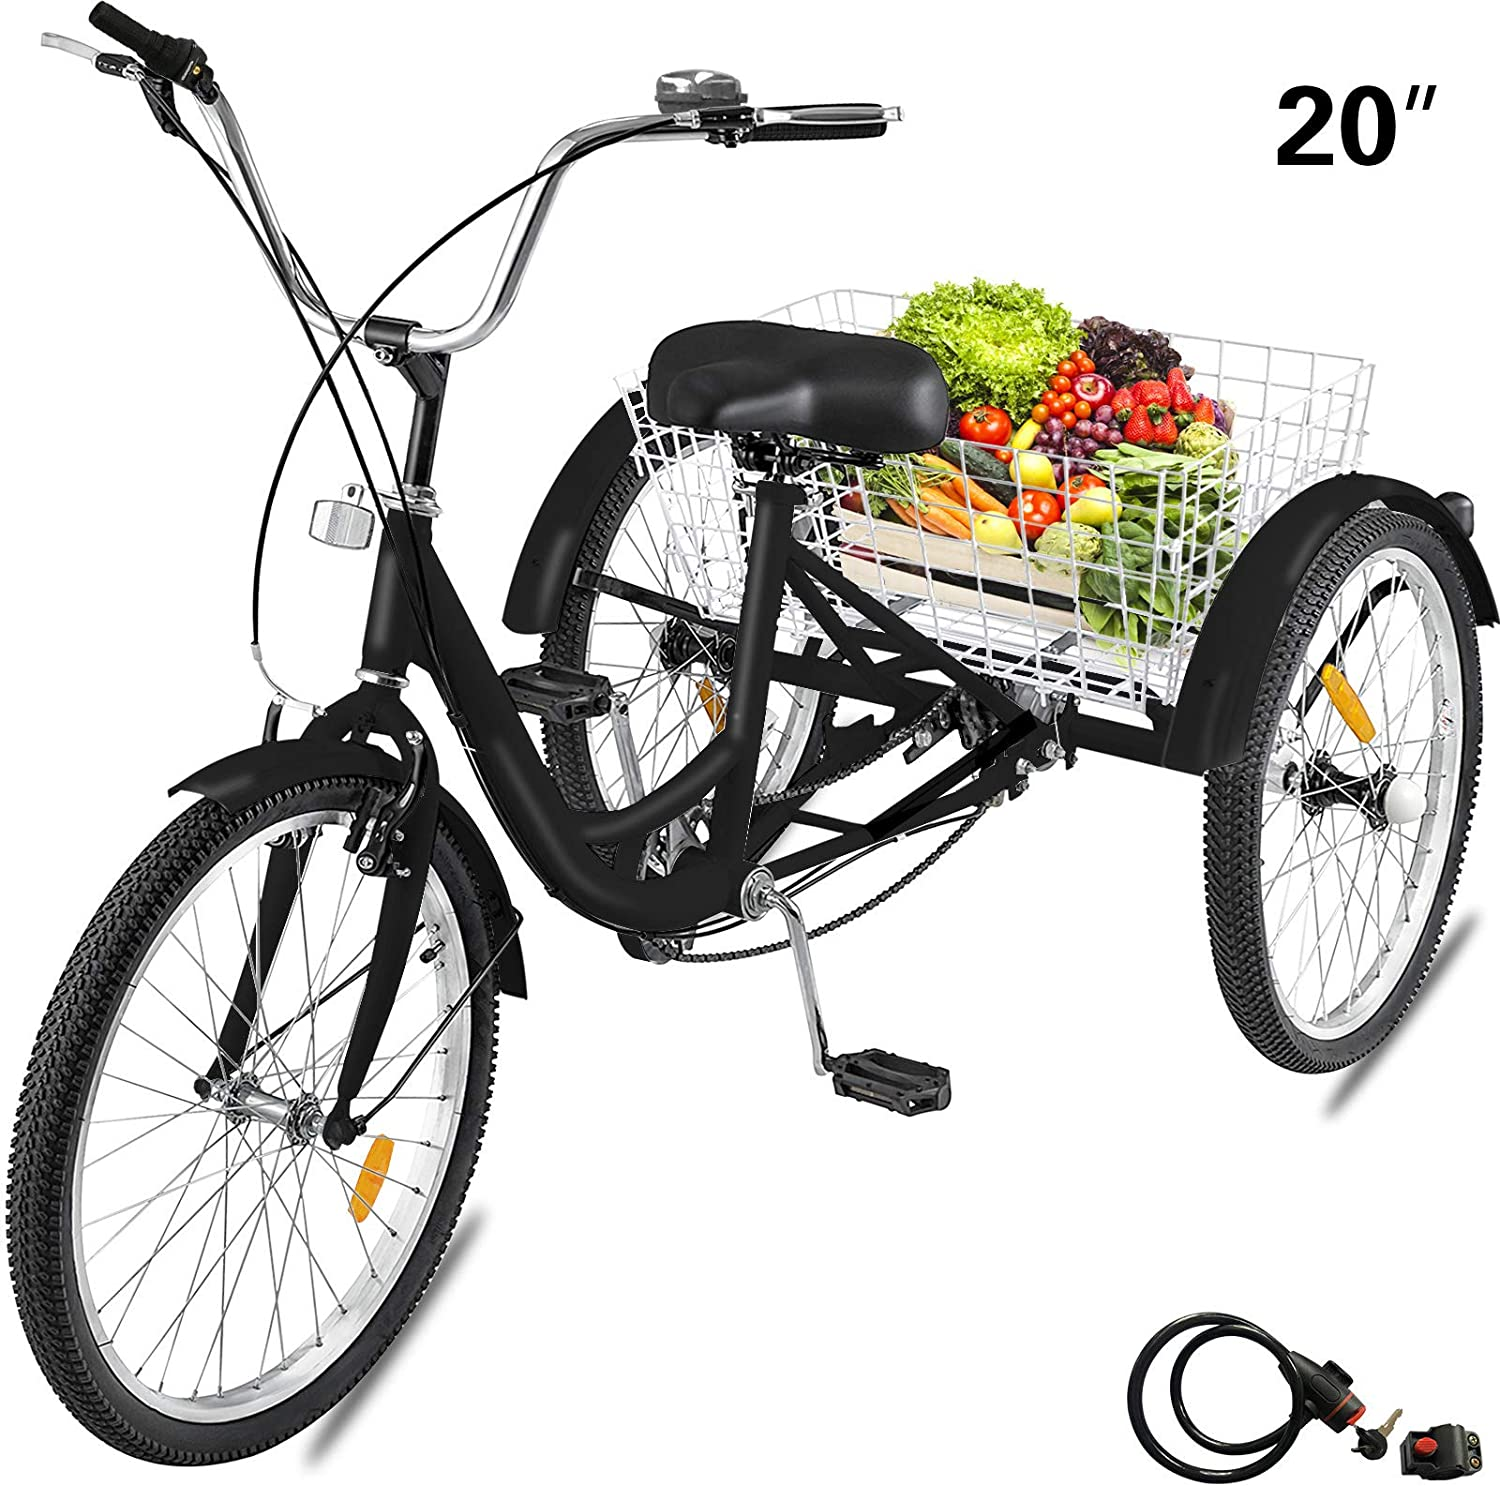 Happibuy Adult 1-Speed Tricycle